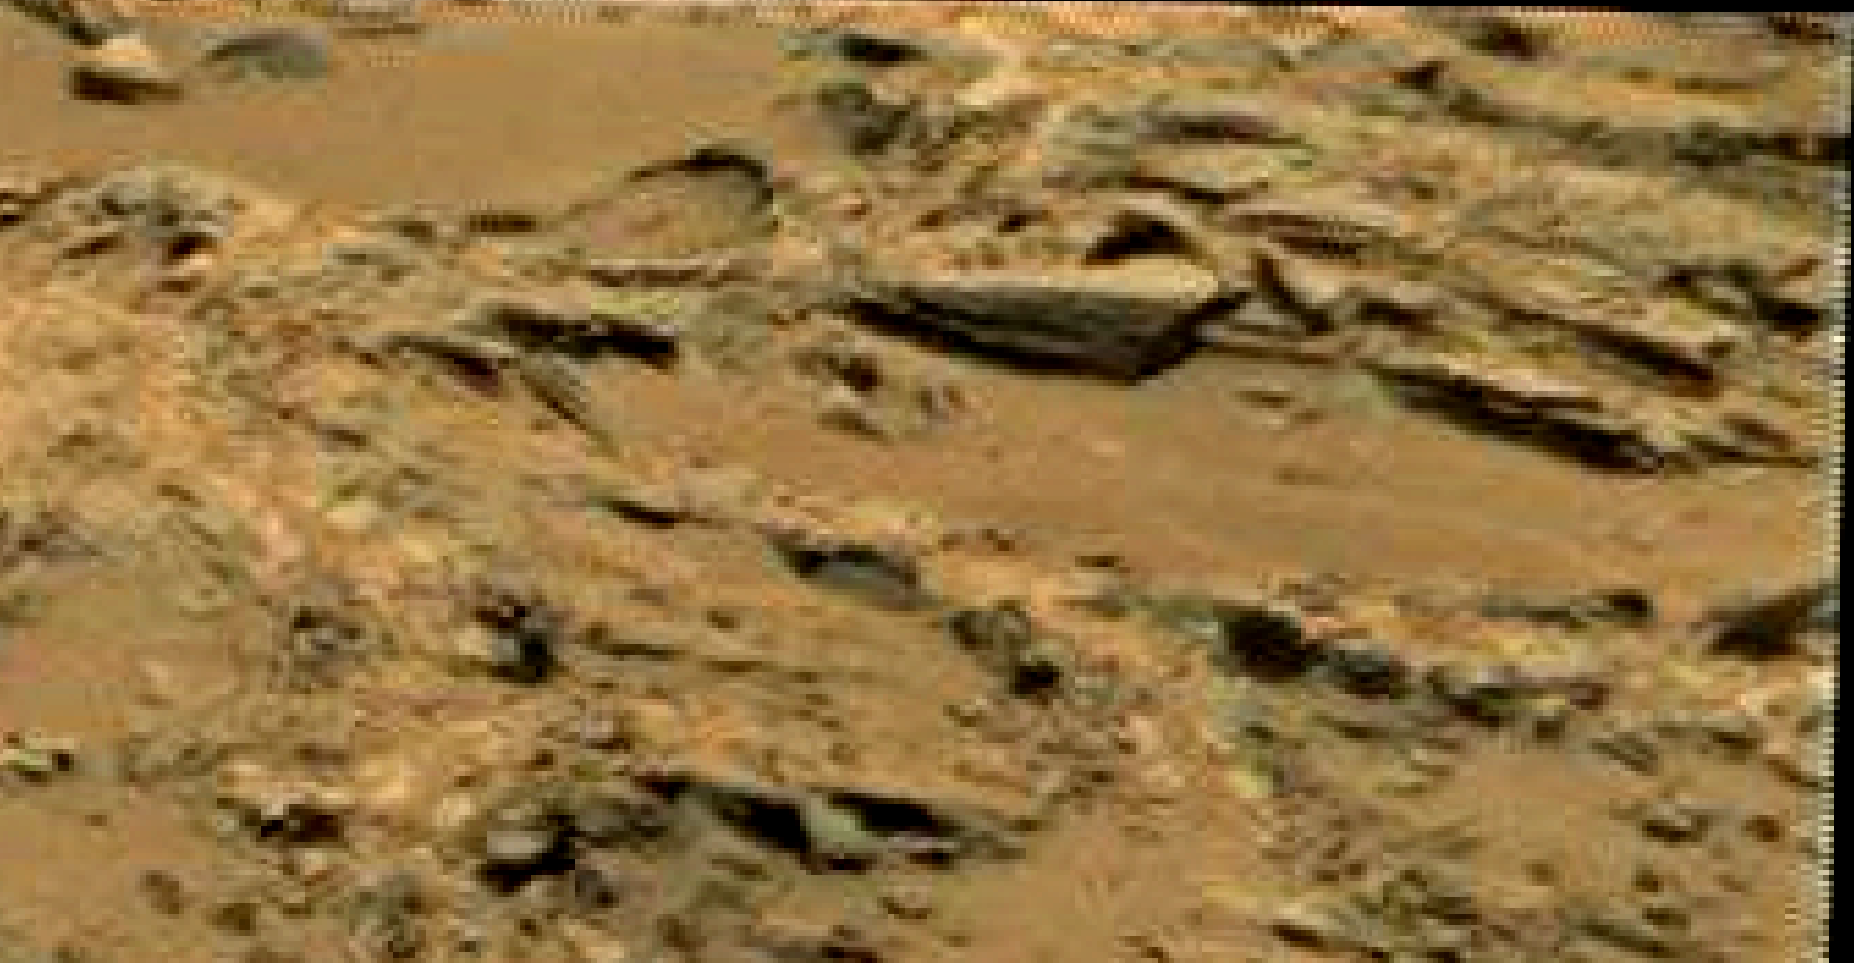 mars sol 1353 anomaly-artifacts 73 was life on mars